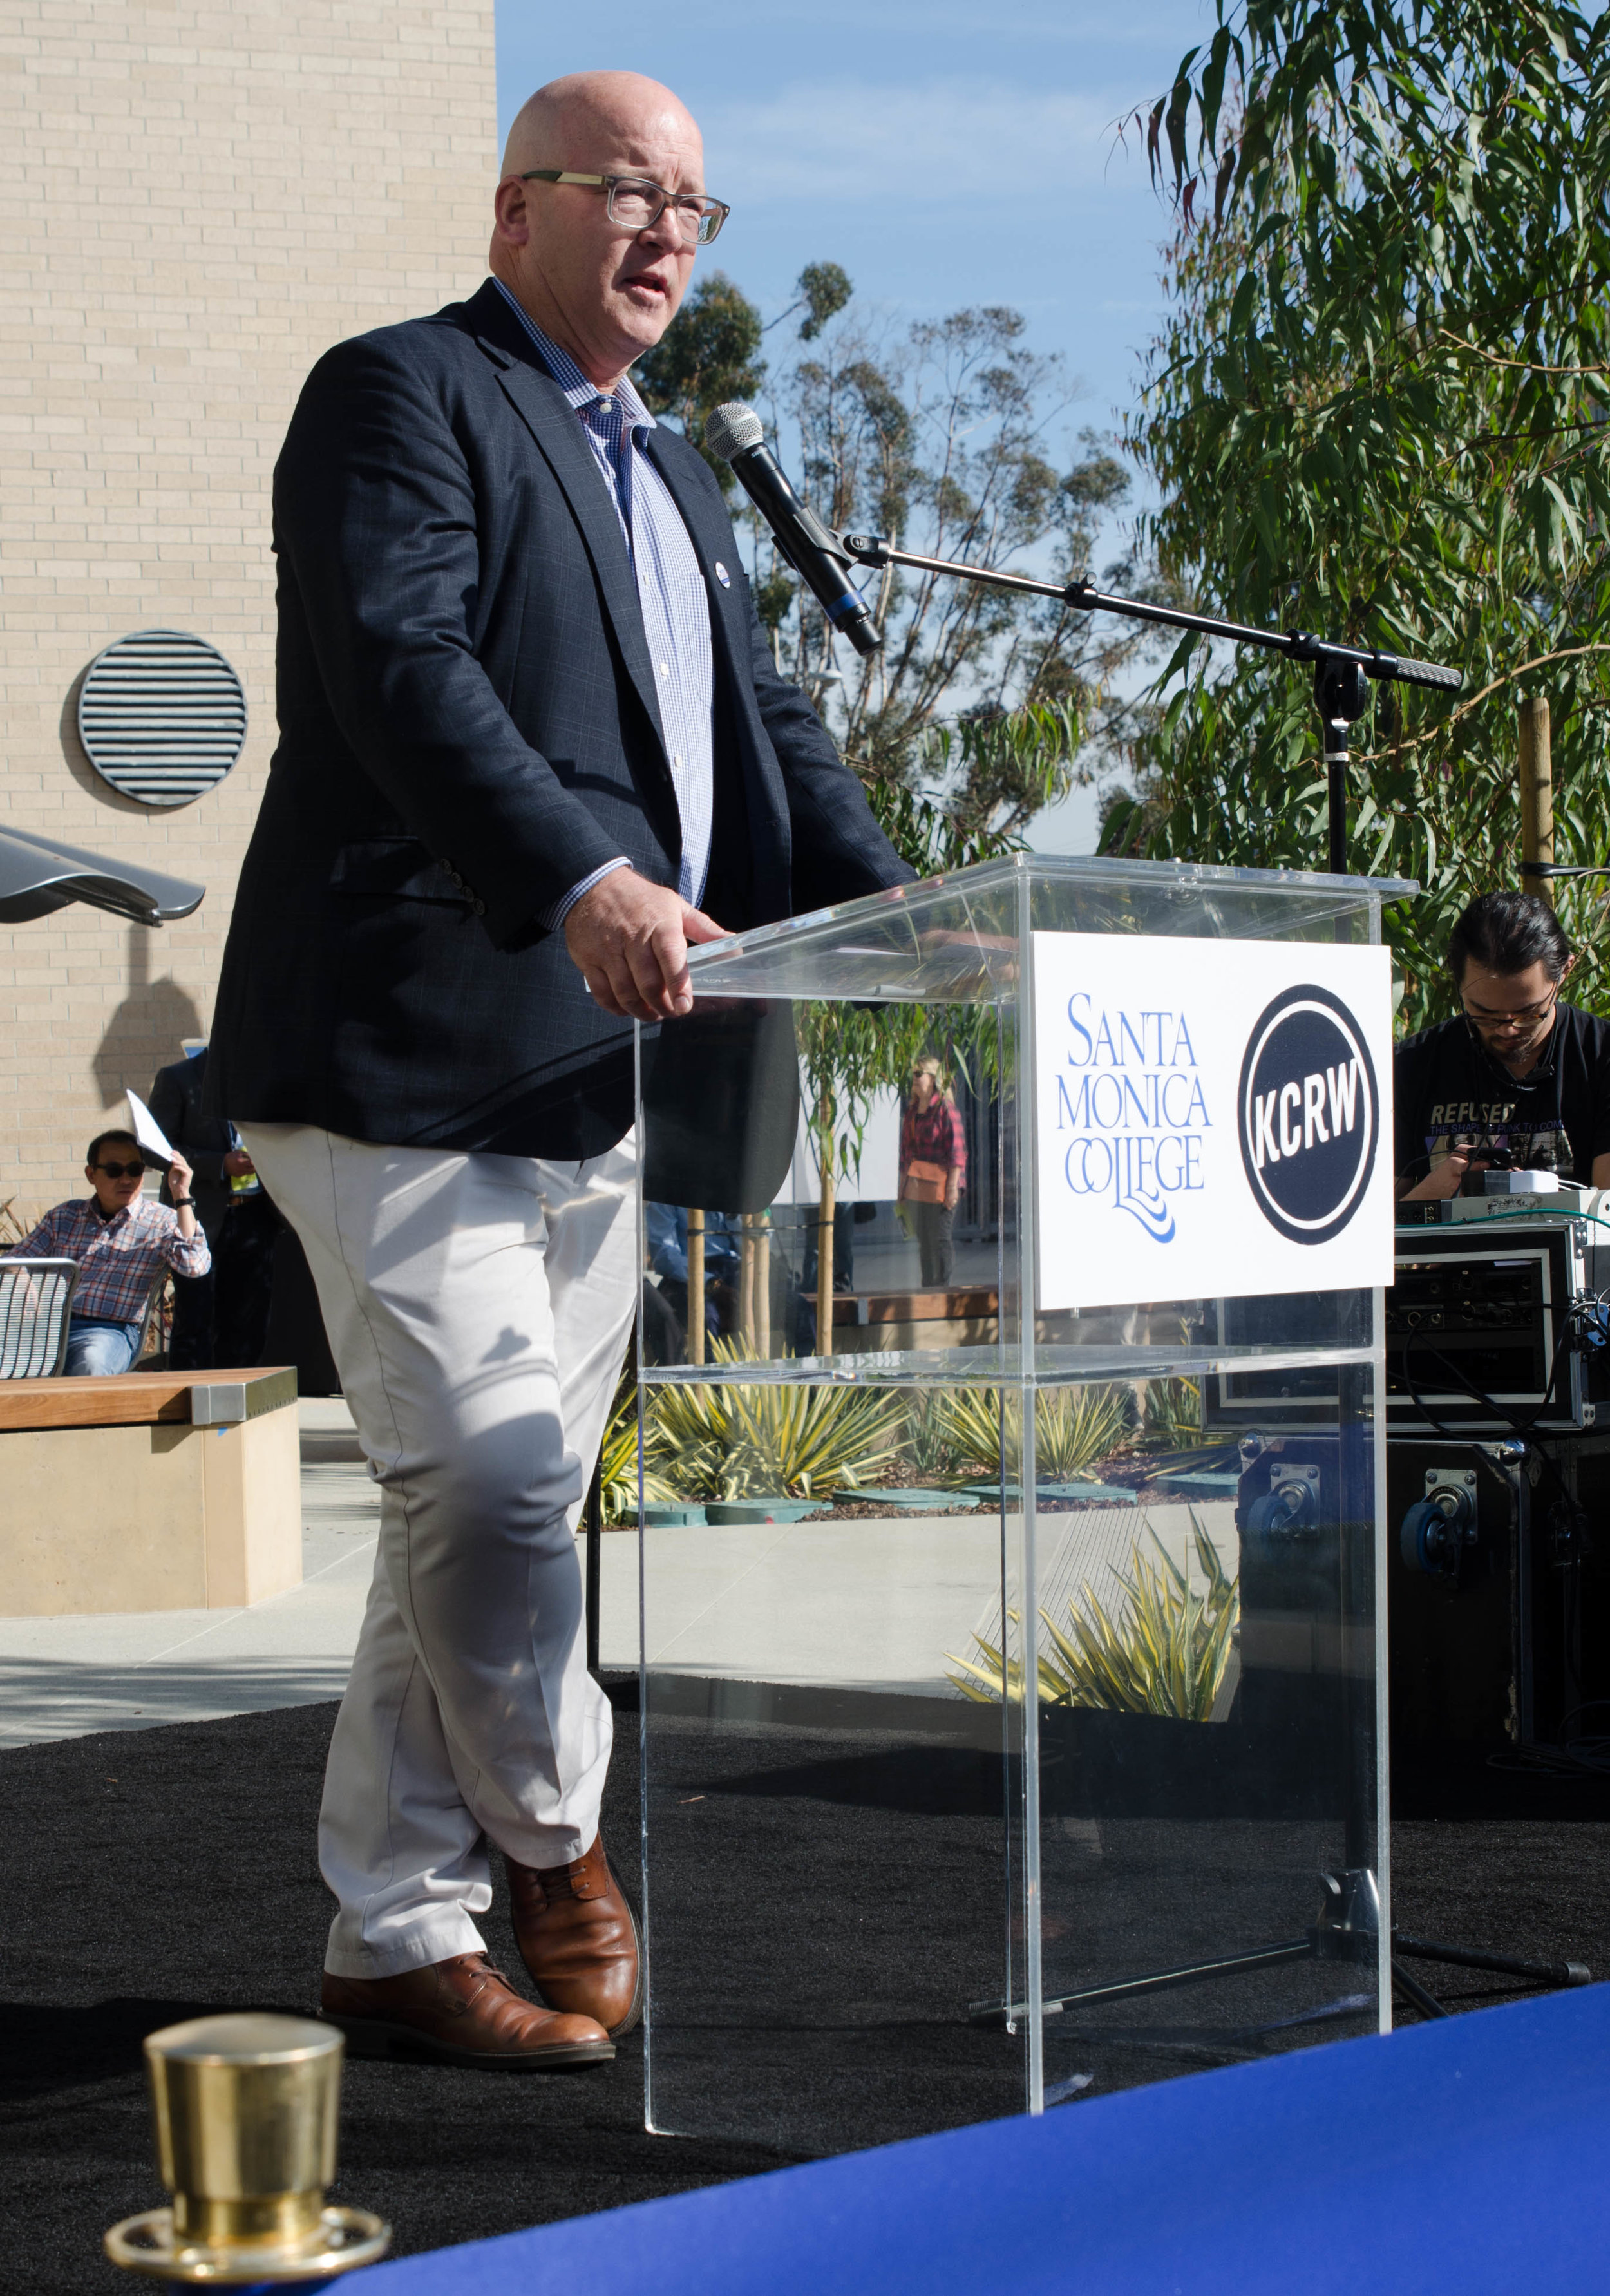 The mayor of Santa Monica speaks at ribbon cutting ceremony for the 'Center for Media and Design' and 'KCRW Media Center' . Santa Monica, Calif. December 2,2017 (Photo by: Diana Parra Garcia)